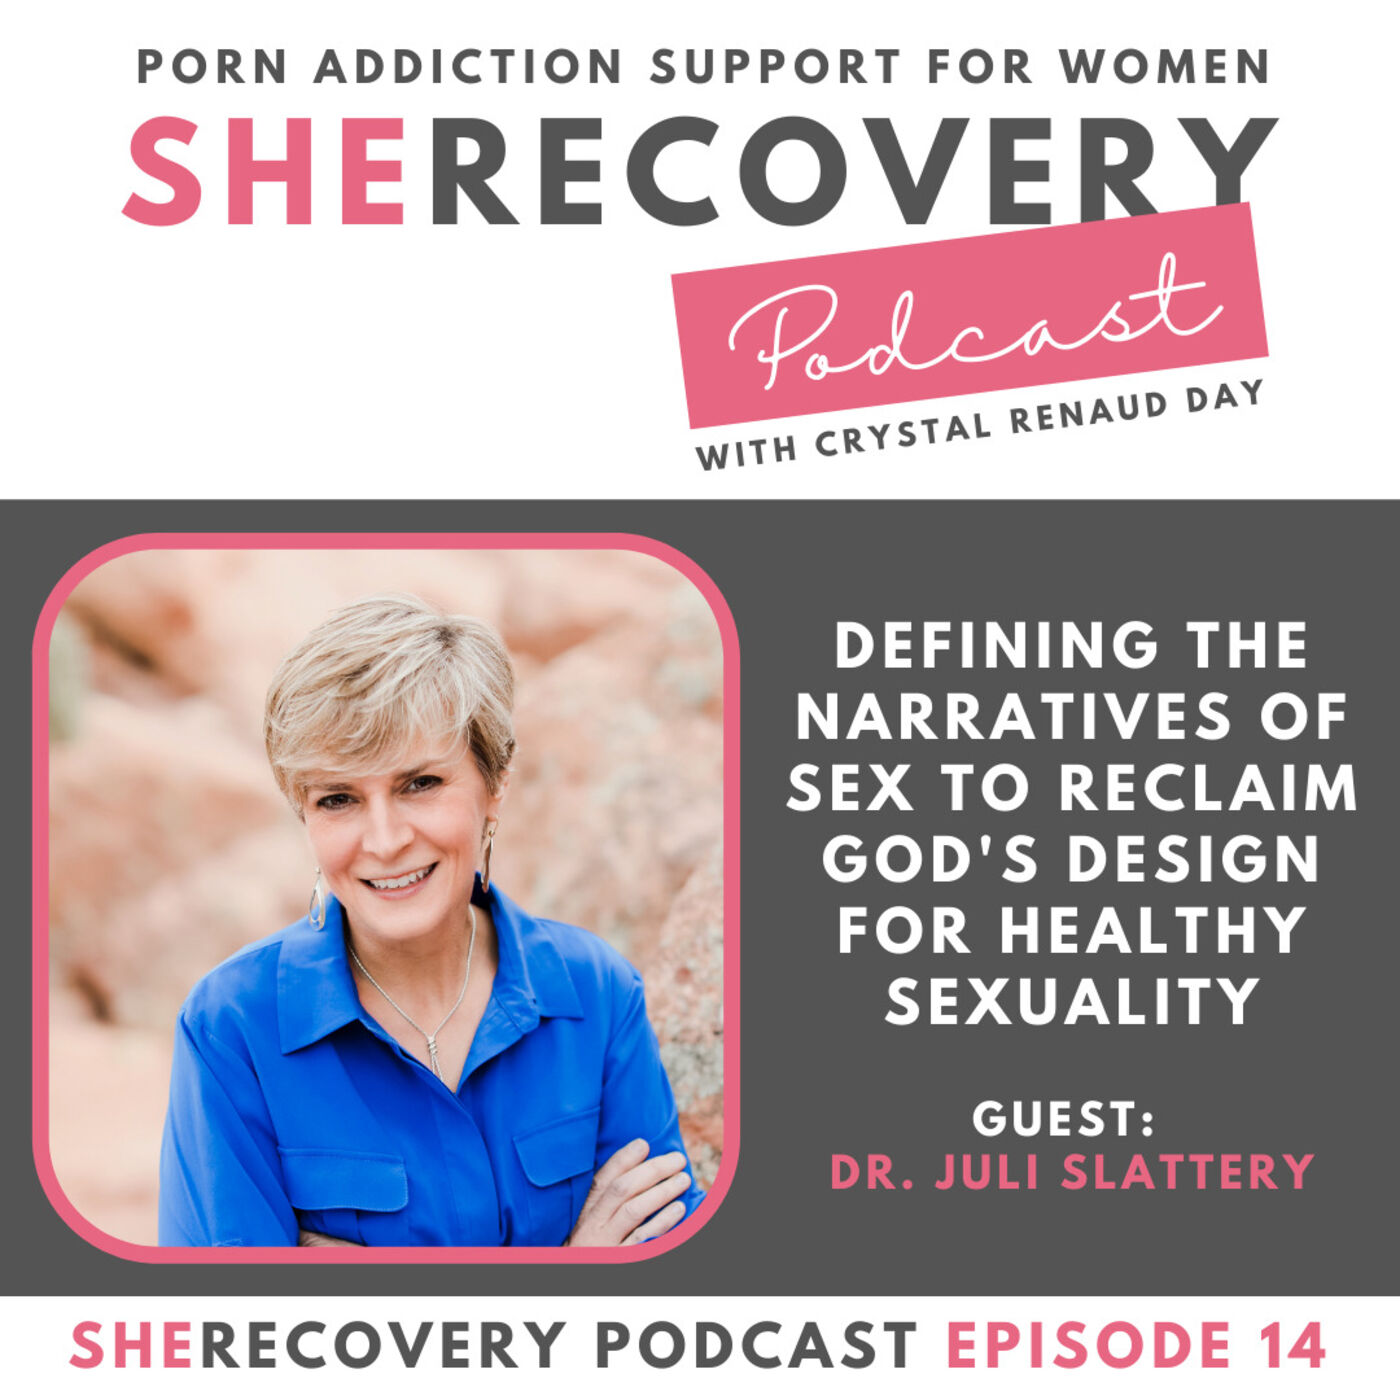 S1 E14: Dr. Juli Slattery - Defining the Narratives of Sex to Reclaim God's Design for Healthy Sexuality